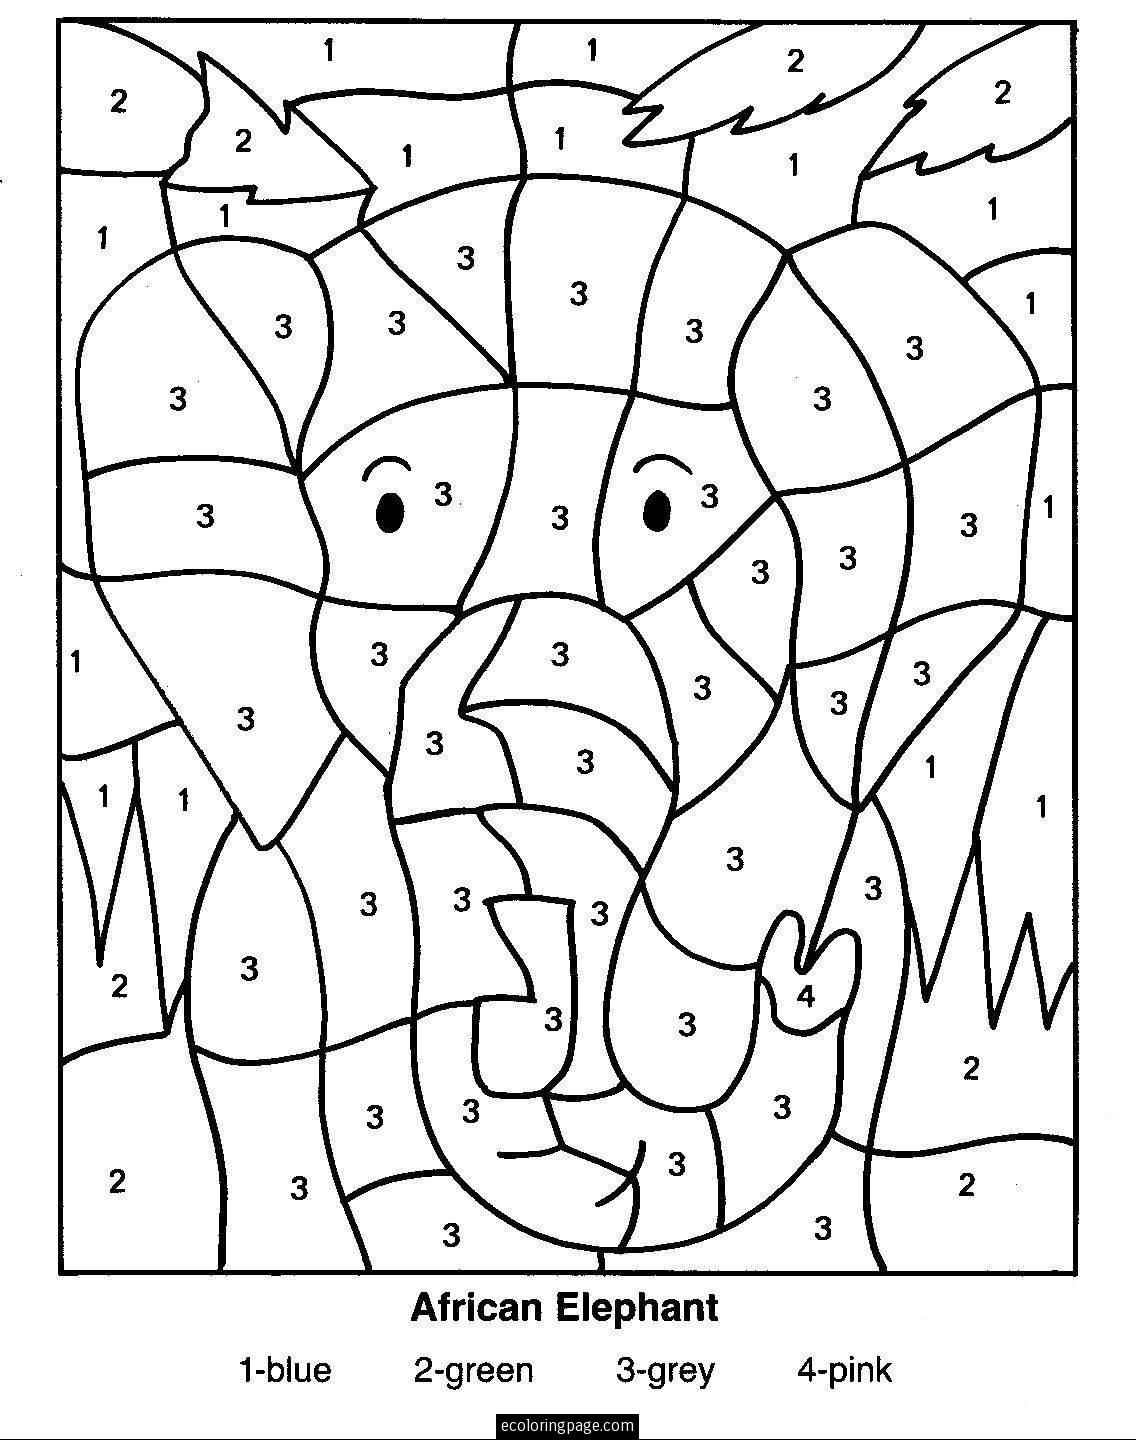 coloring by number pages color by number hedgehog stock illustration download pages number coloring by